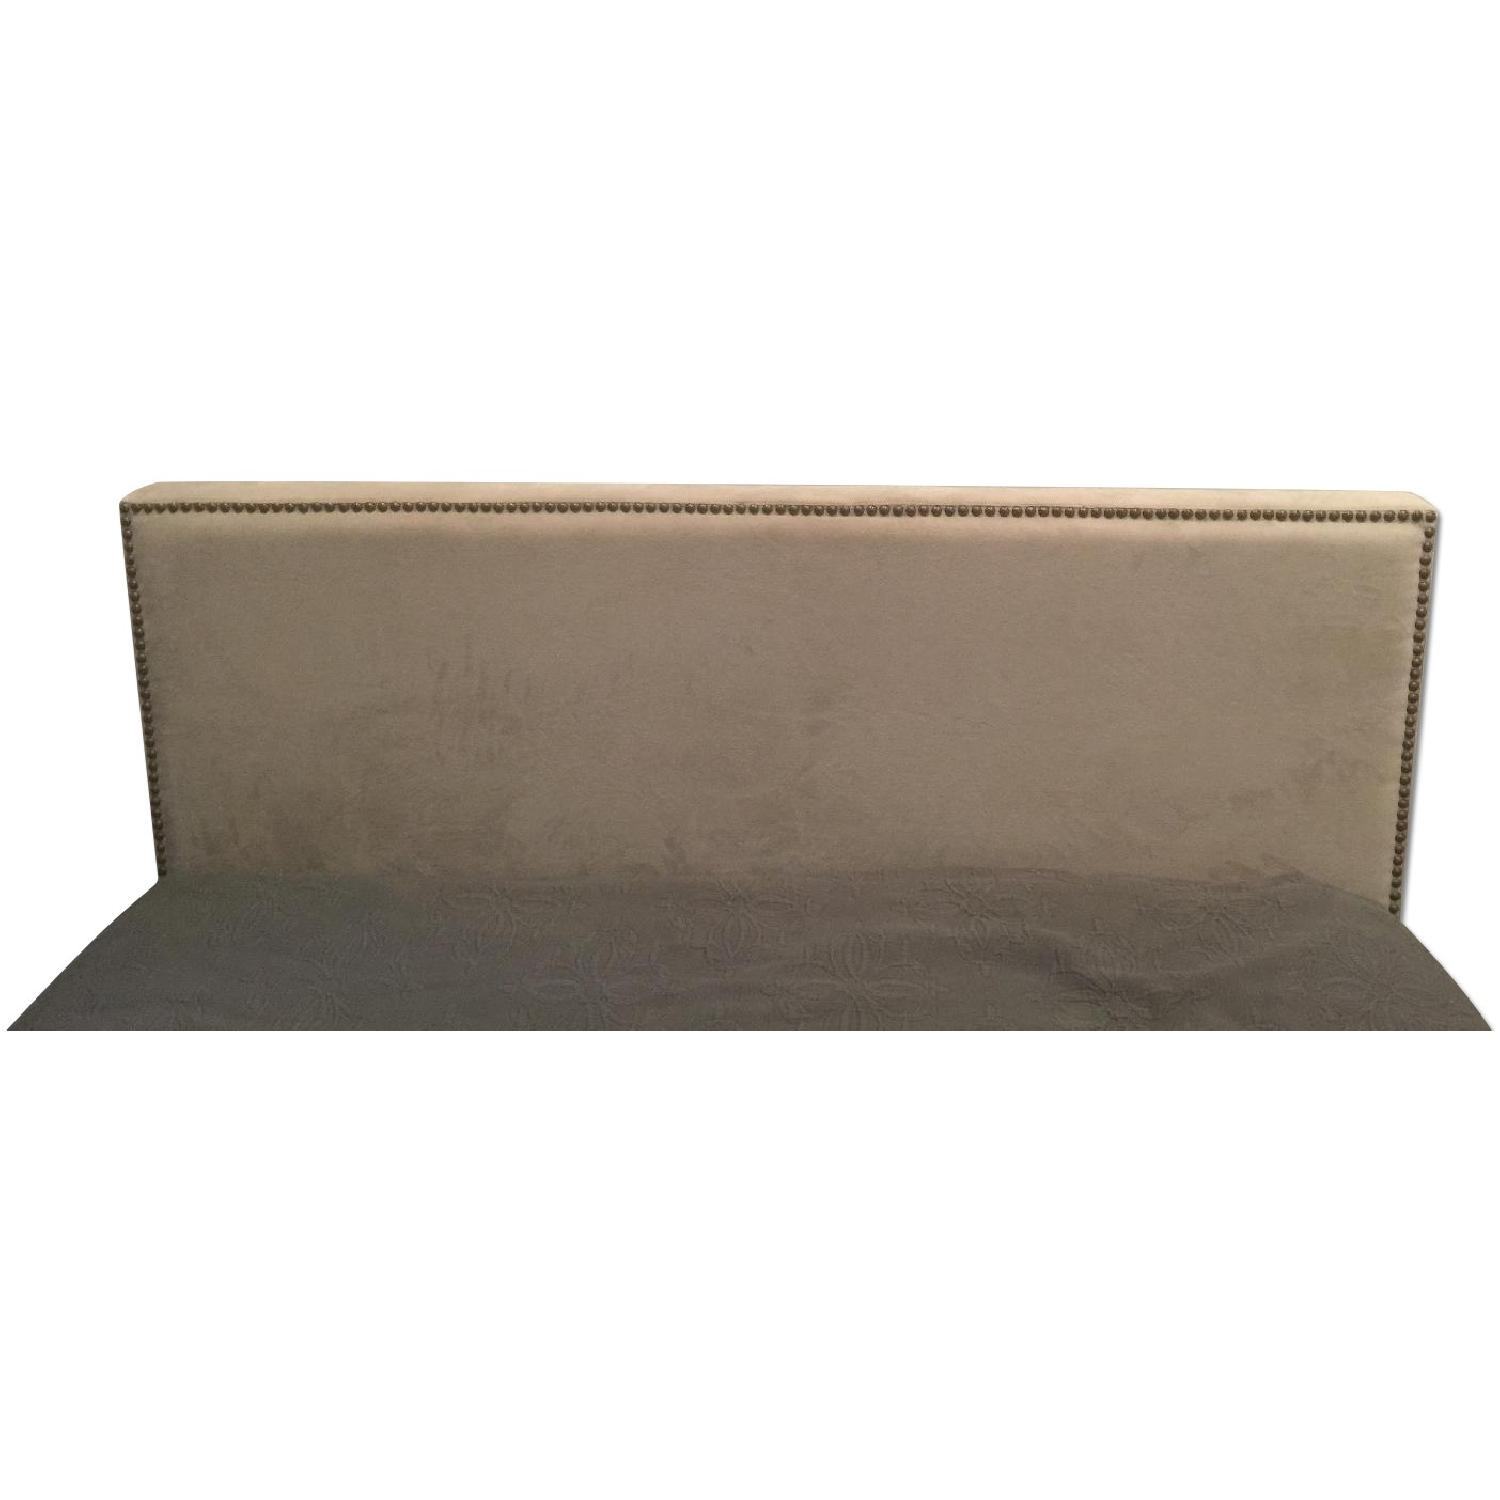 West Elm Full Size Nailhead Upholstered Headboard - image-0